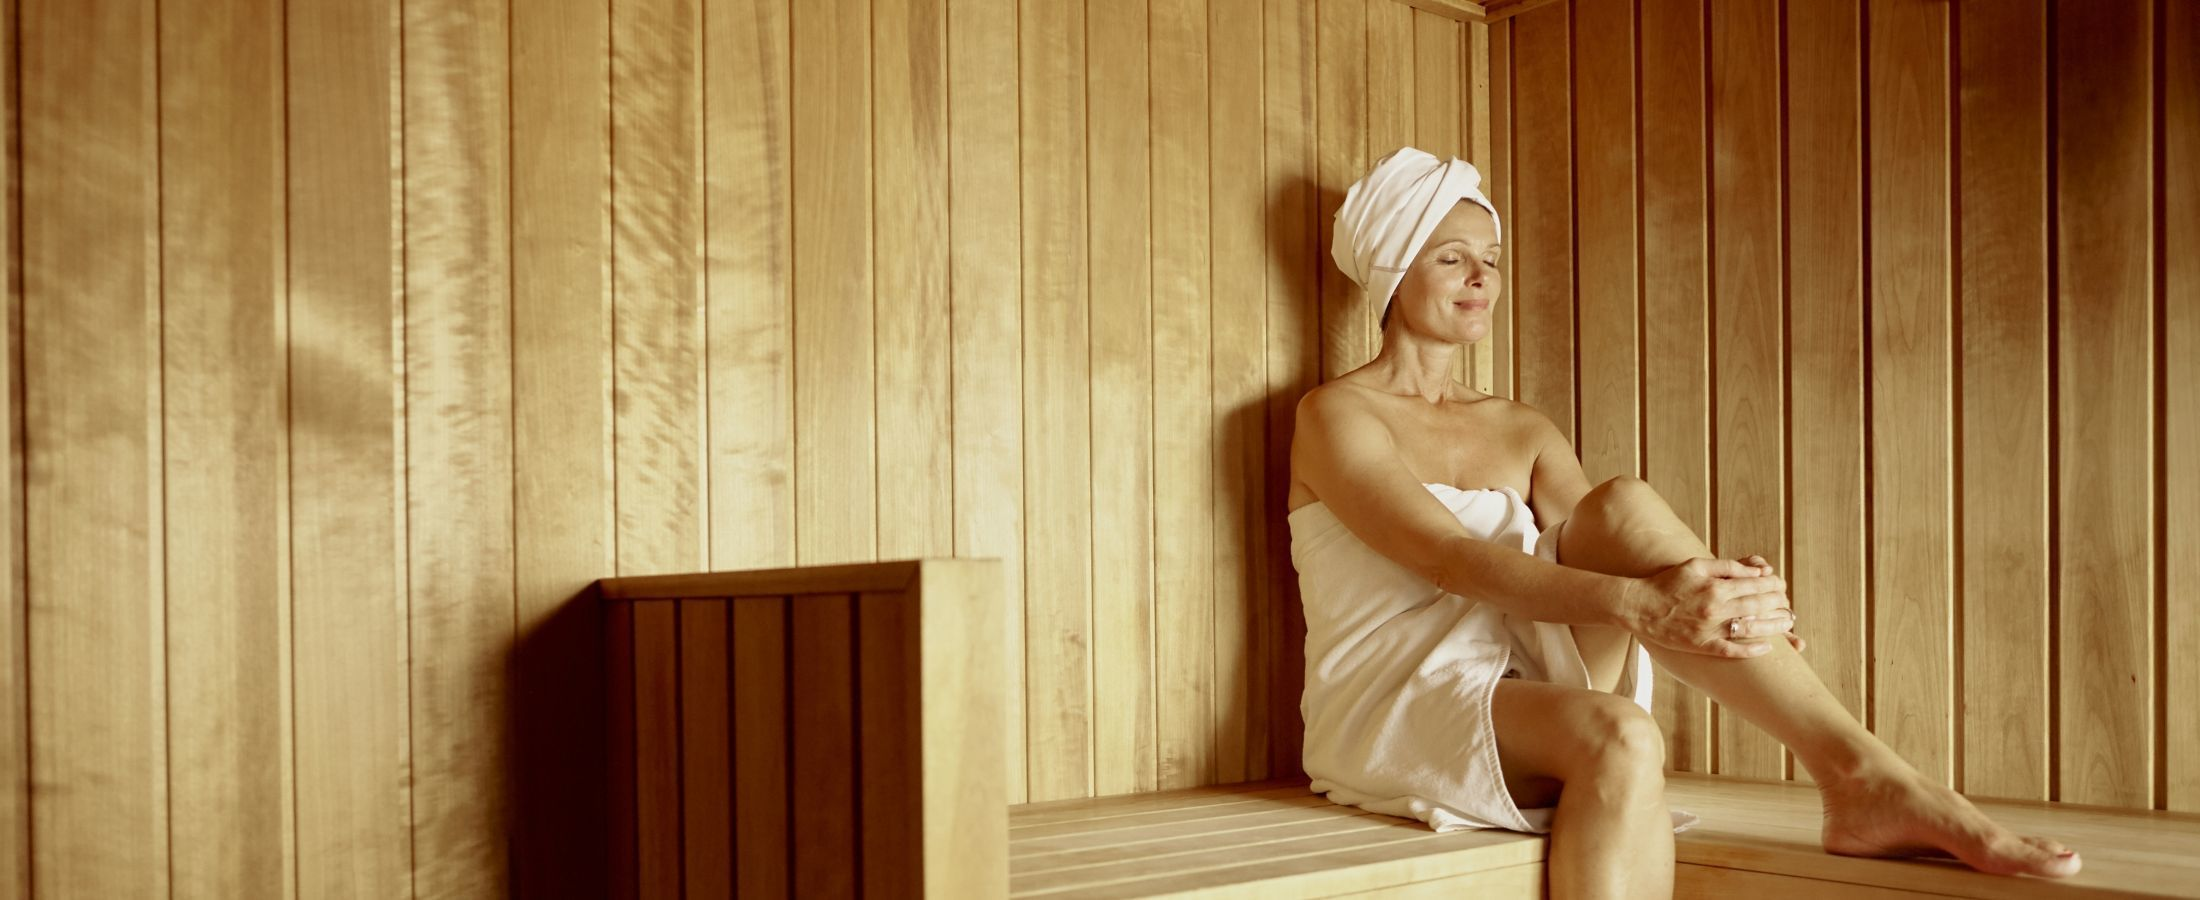 Reach an state of relaxation with time spent in our Finnish sauna.